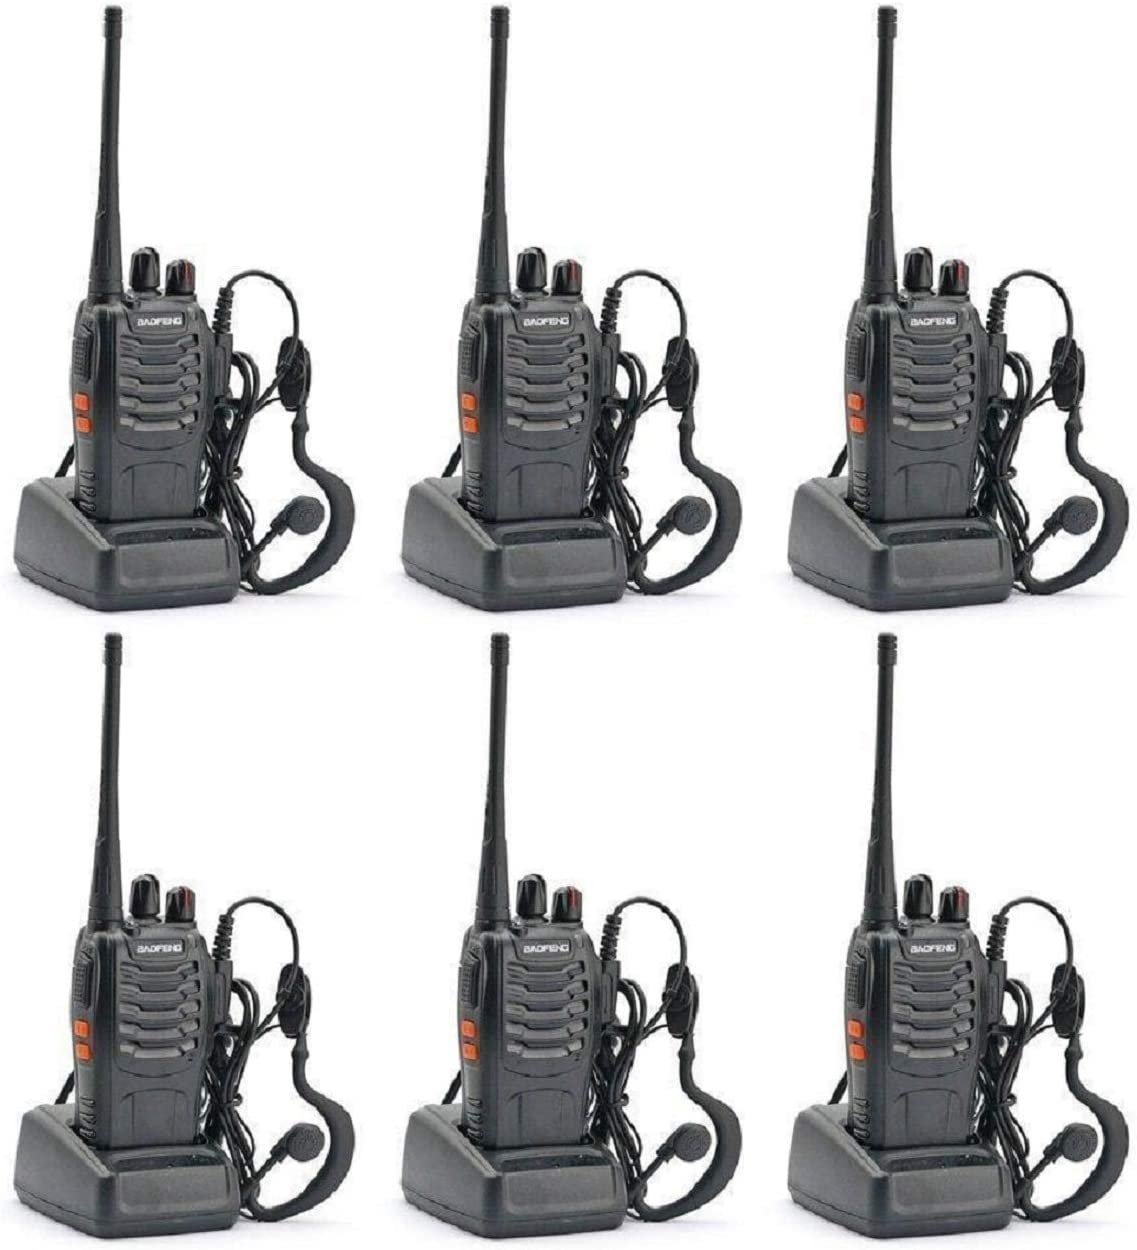 BAOFENG BF-888S Two Way Radio Pack of 6pcs radio